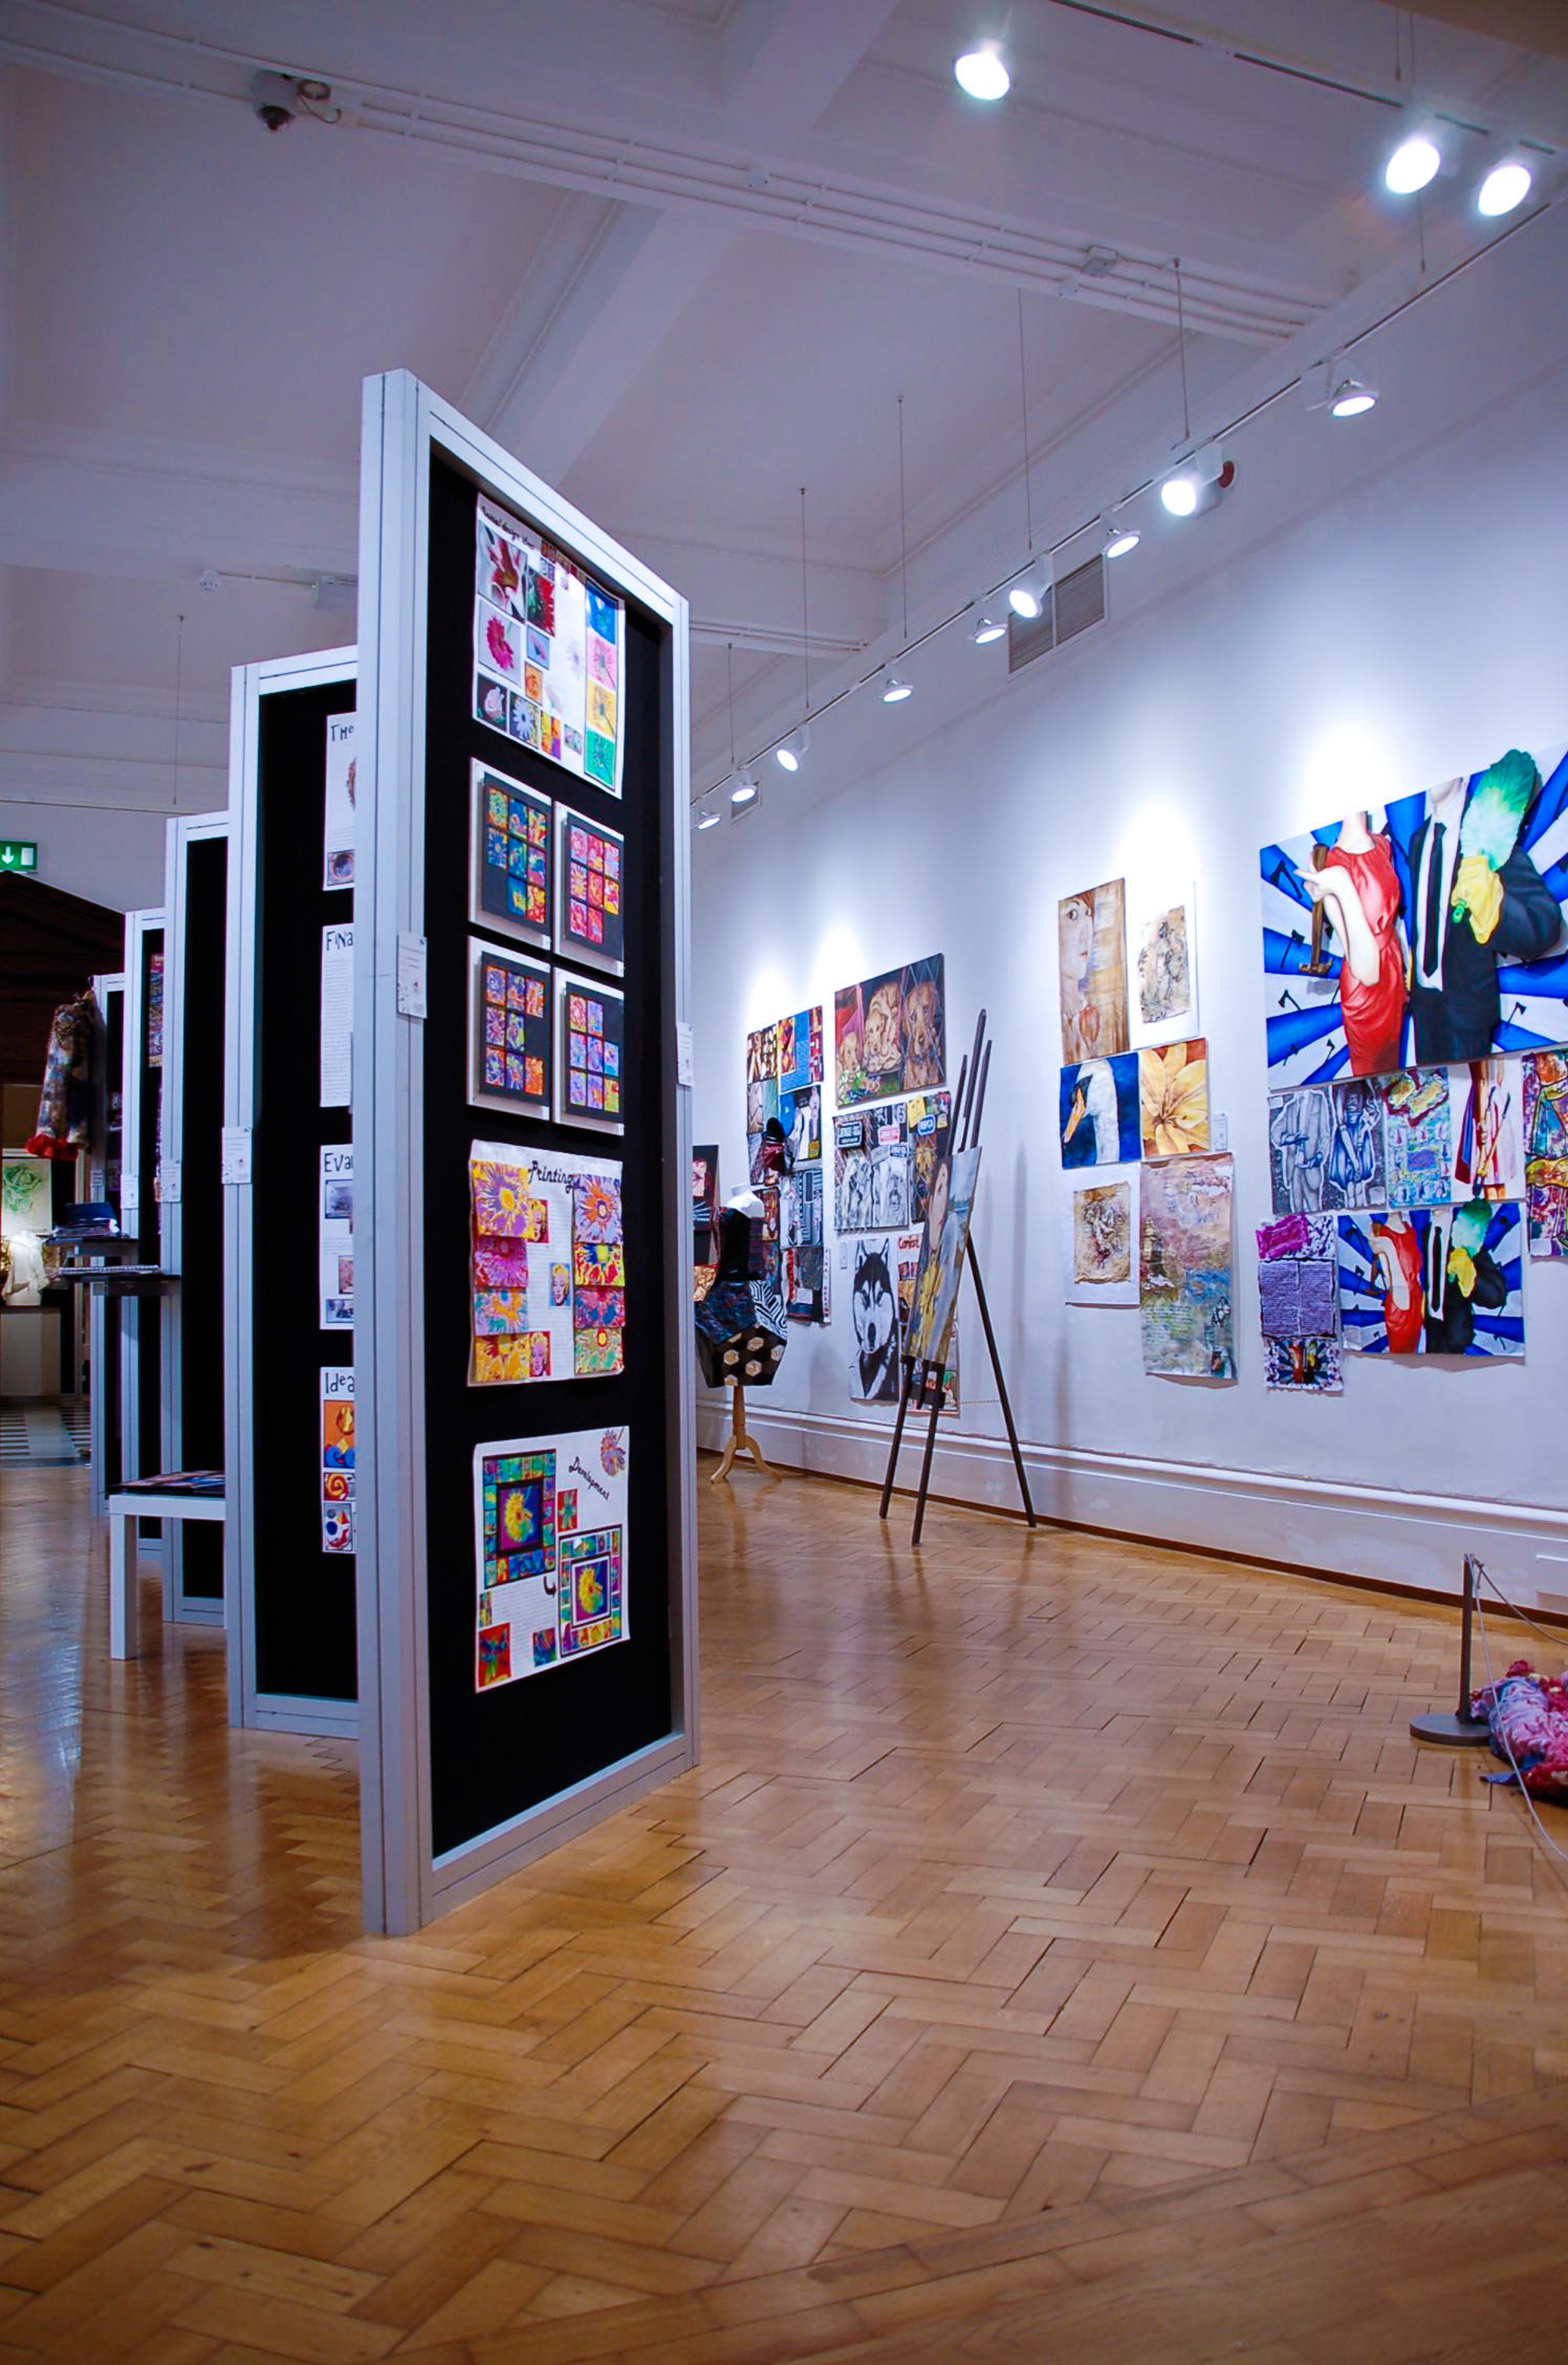 Gallery panels and art installation